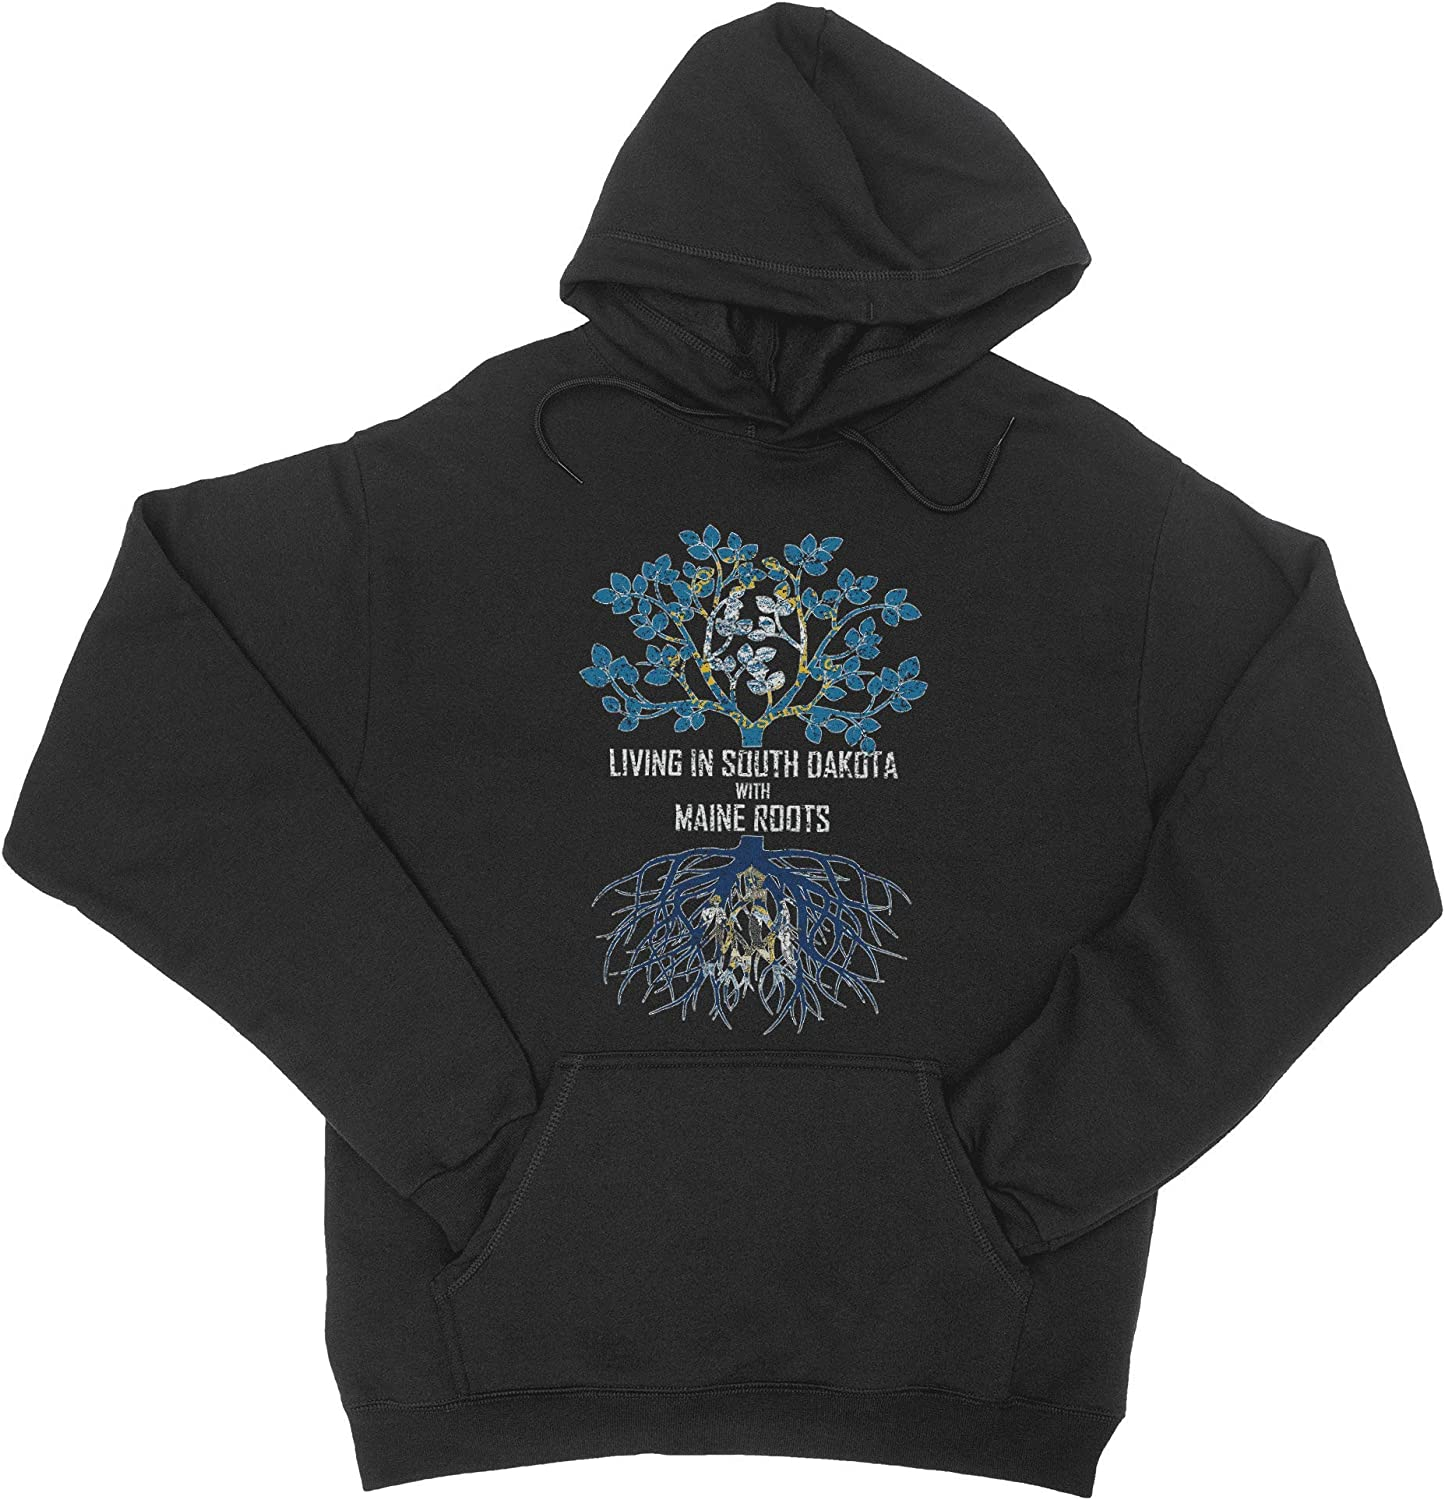 HARD EDGE shop 2021new shipping free DESIGN Unisex Living In Dakota with South Maine Roots